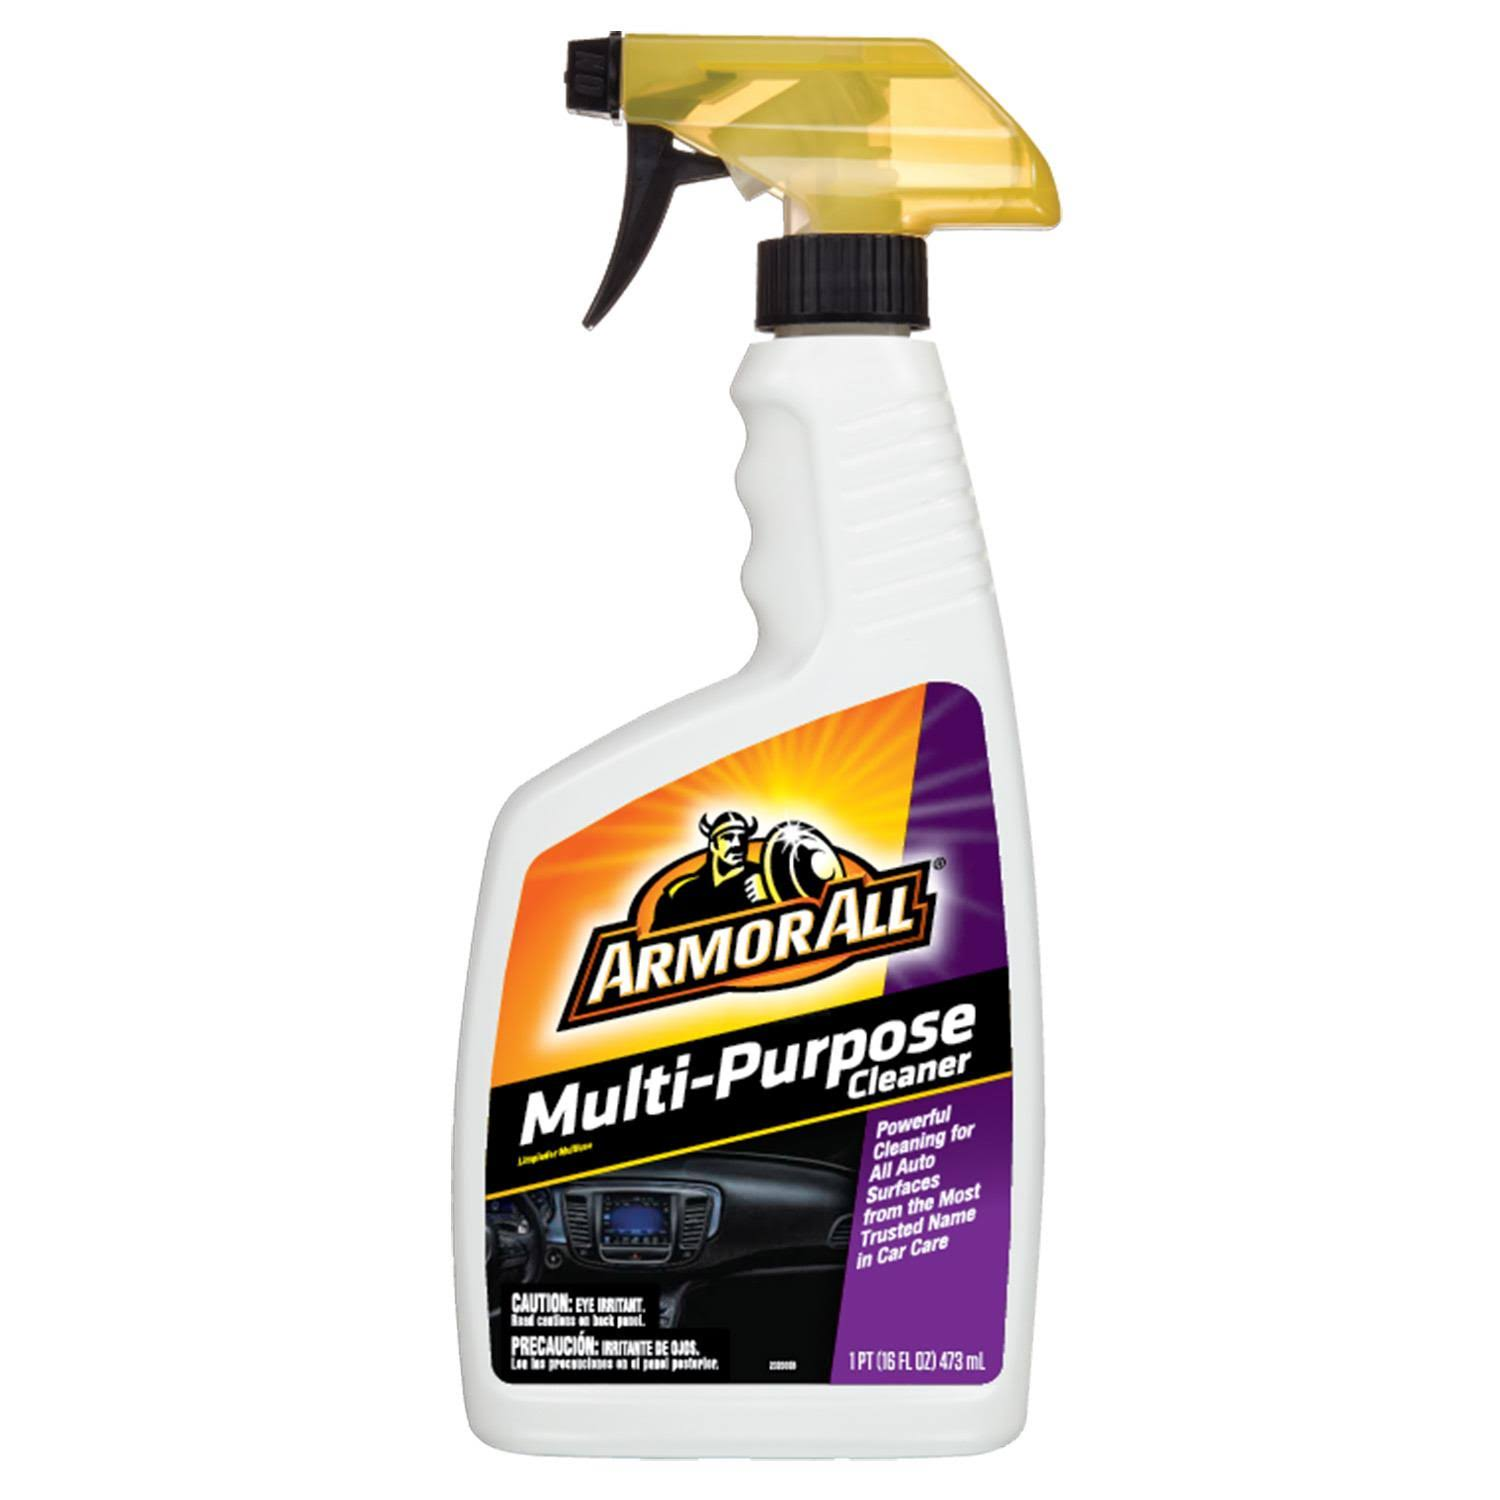 Armor All Multi-Purpose Auto Cleaner - 470ml